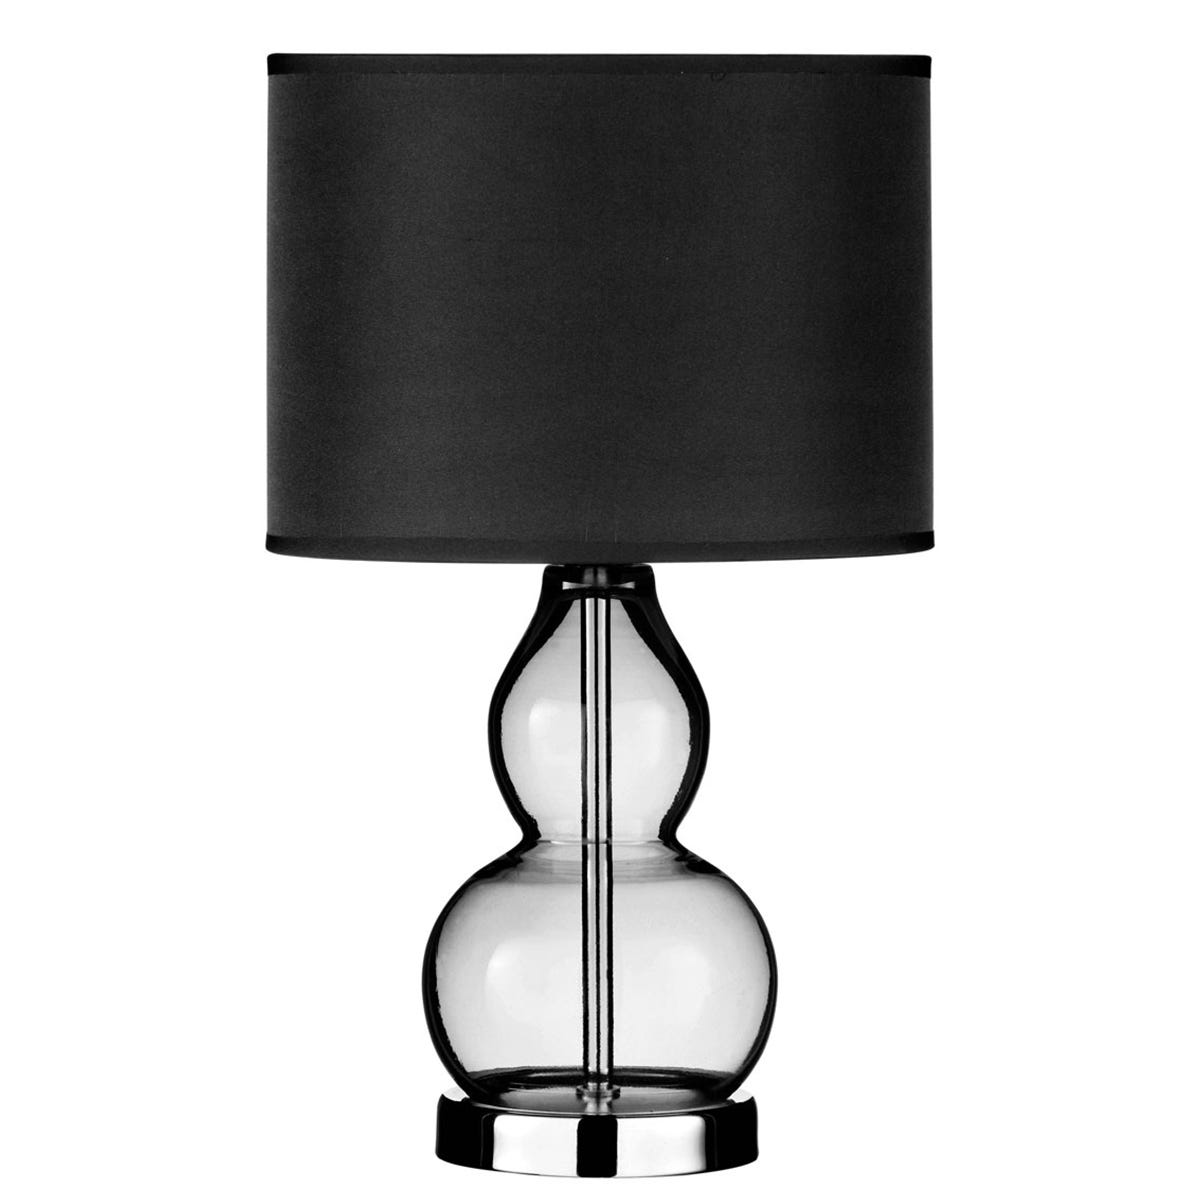 Premier Housewares Table Lamp in Smoke Grey Glass with Chrome Base & Black Shade